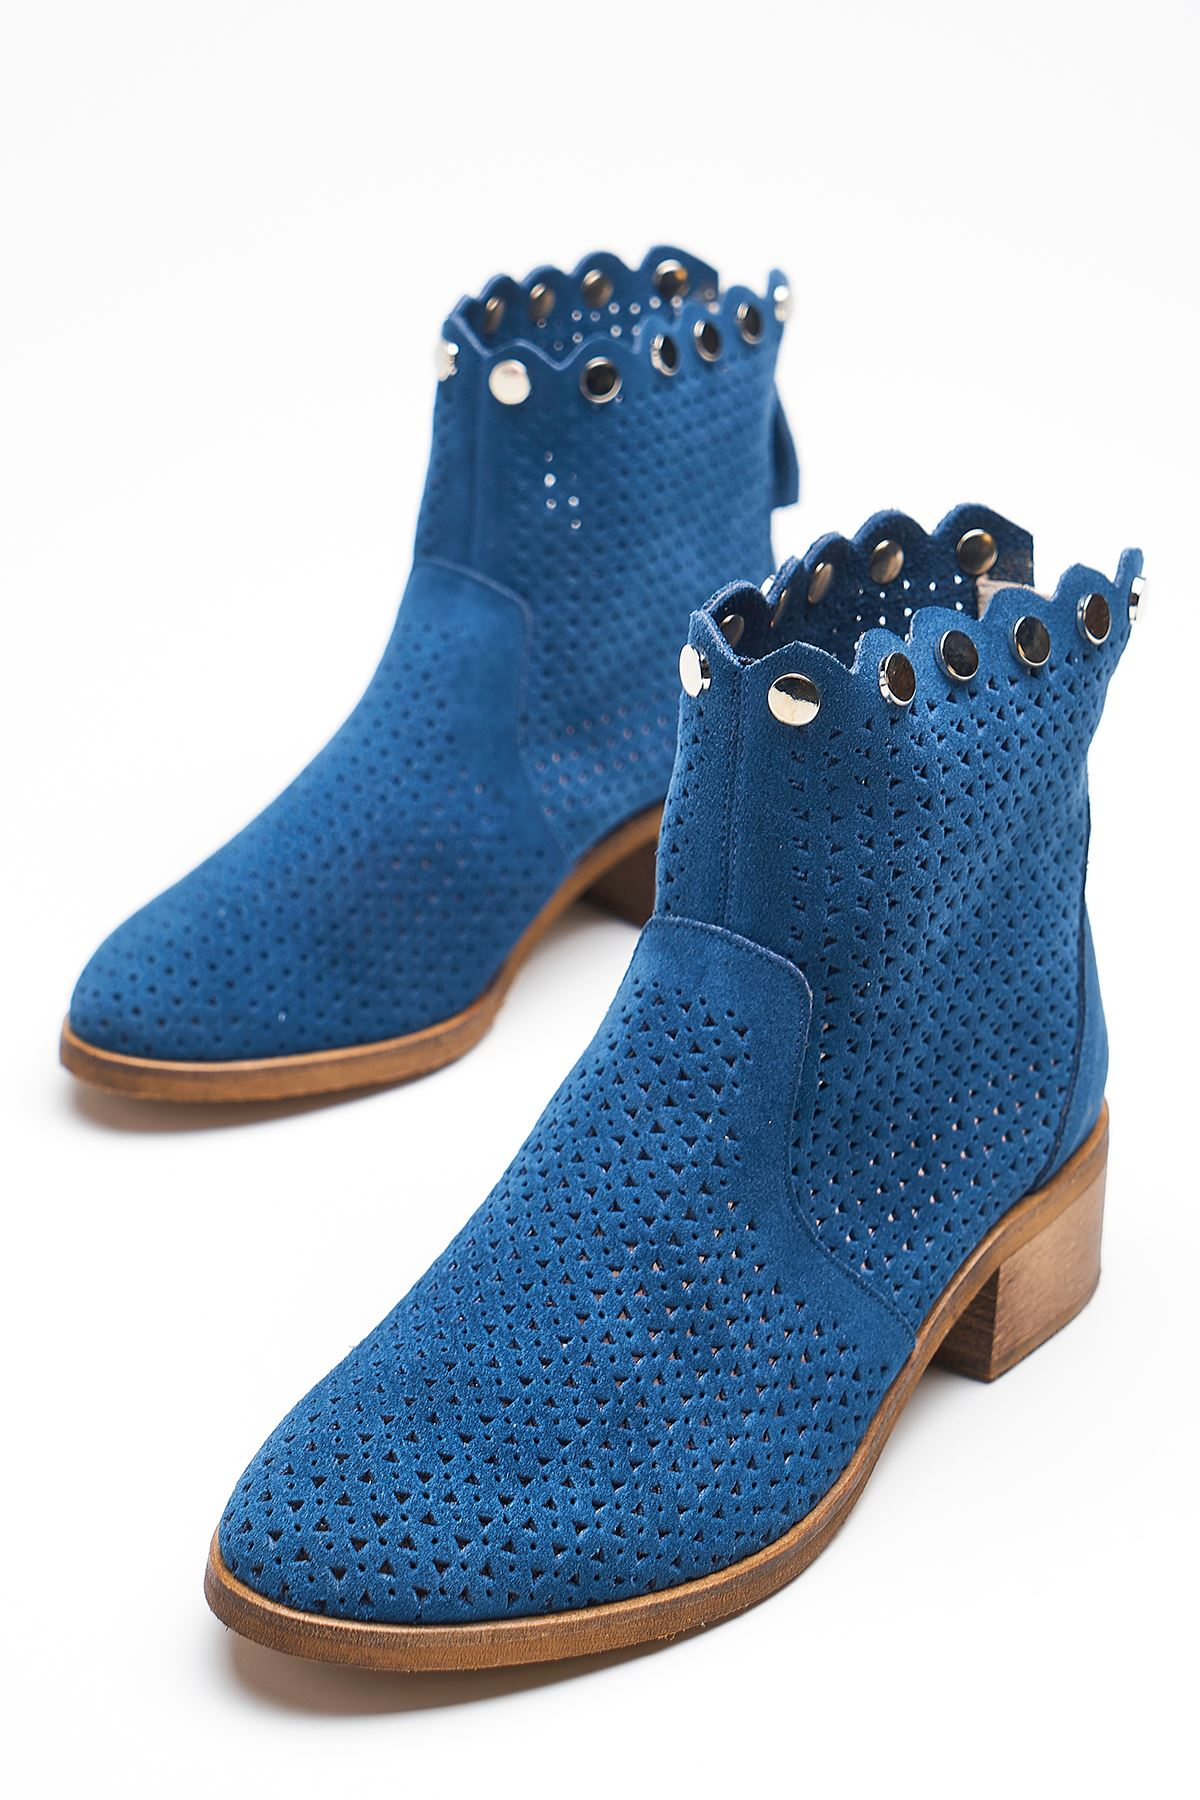 Gust Blue Genuine Leather Women's Summer Boots